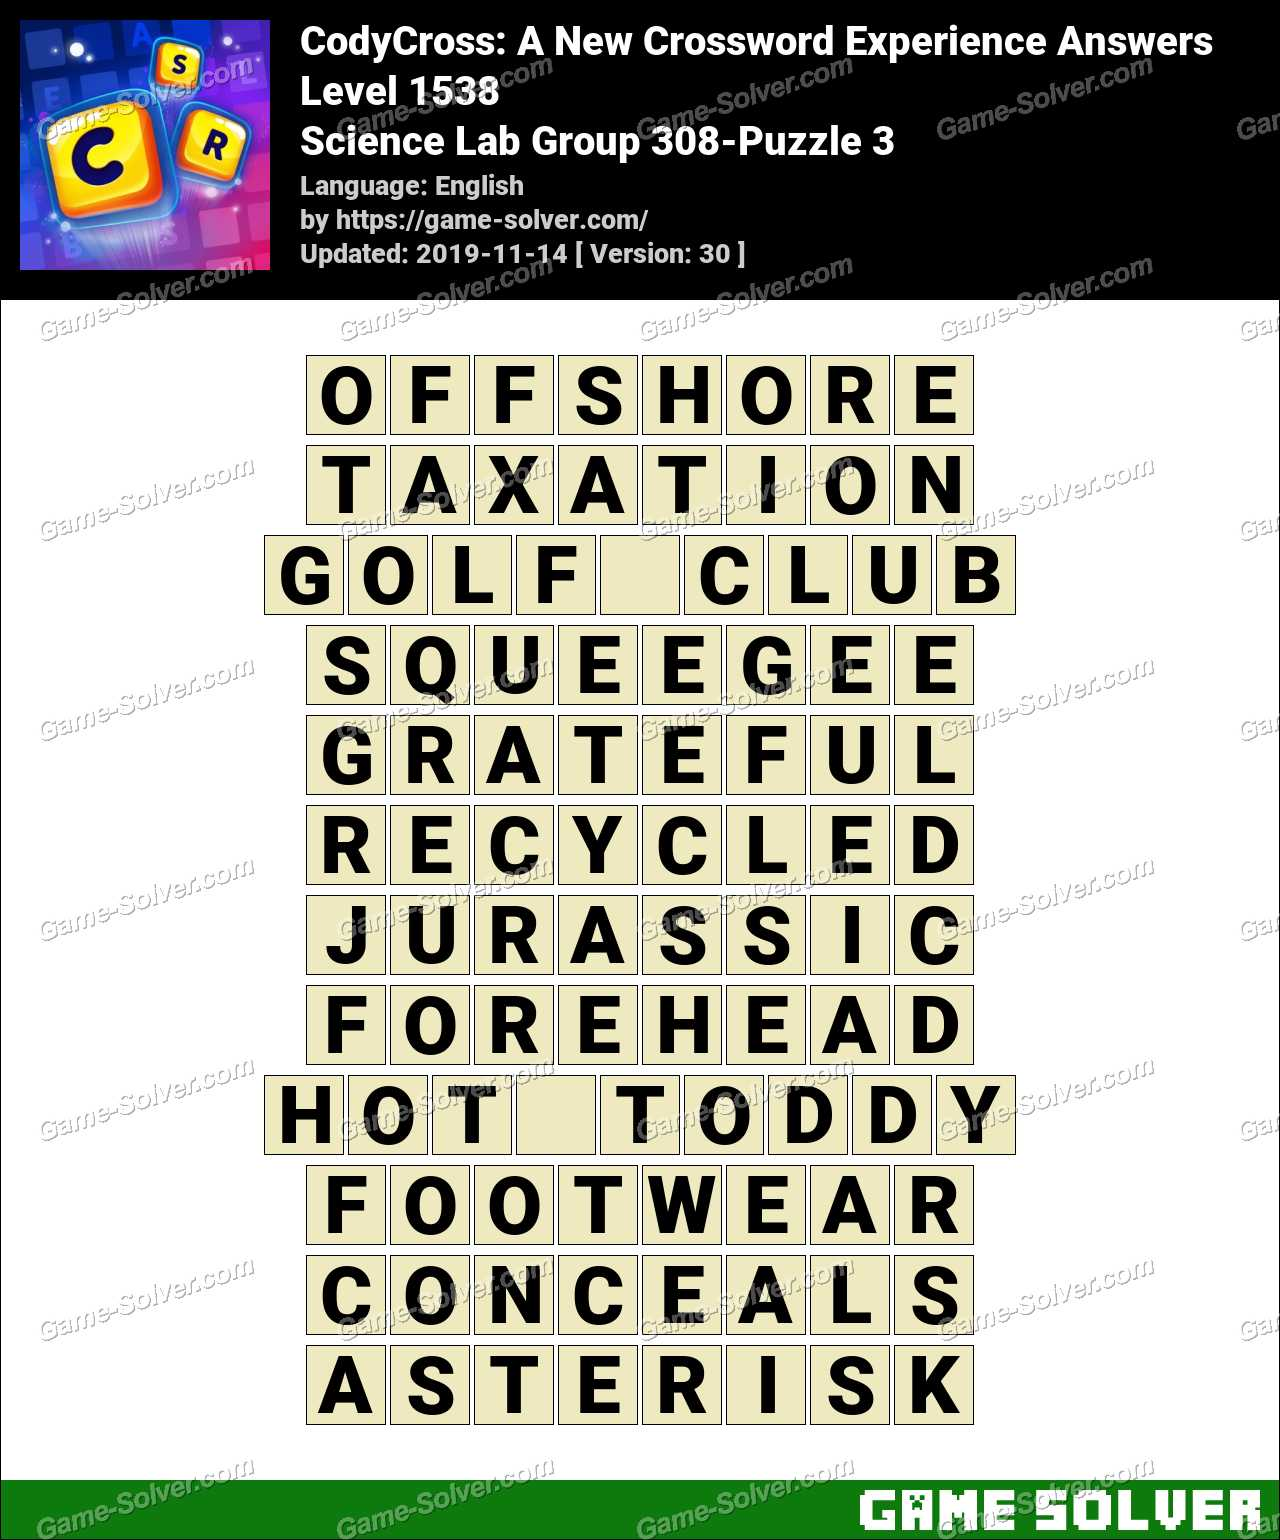 CodyCross Science Lab Group 308-Puzzle 3 Answers